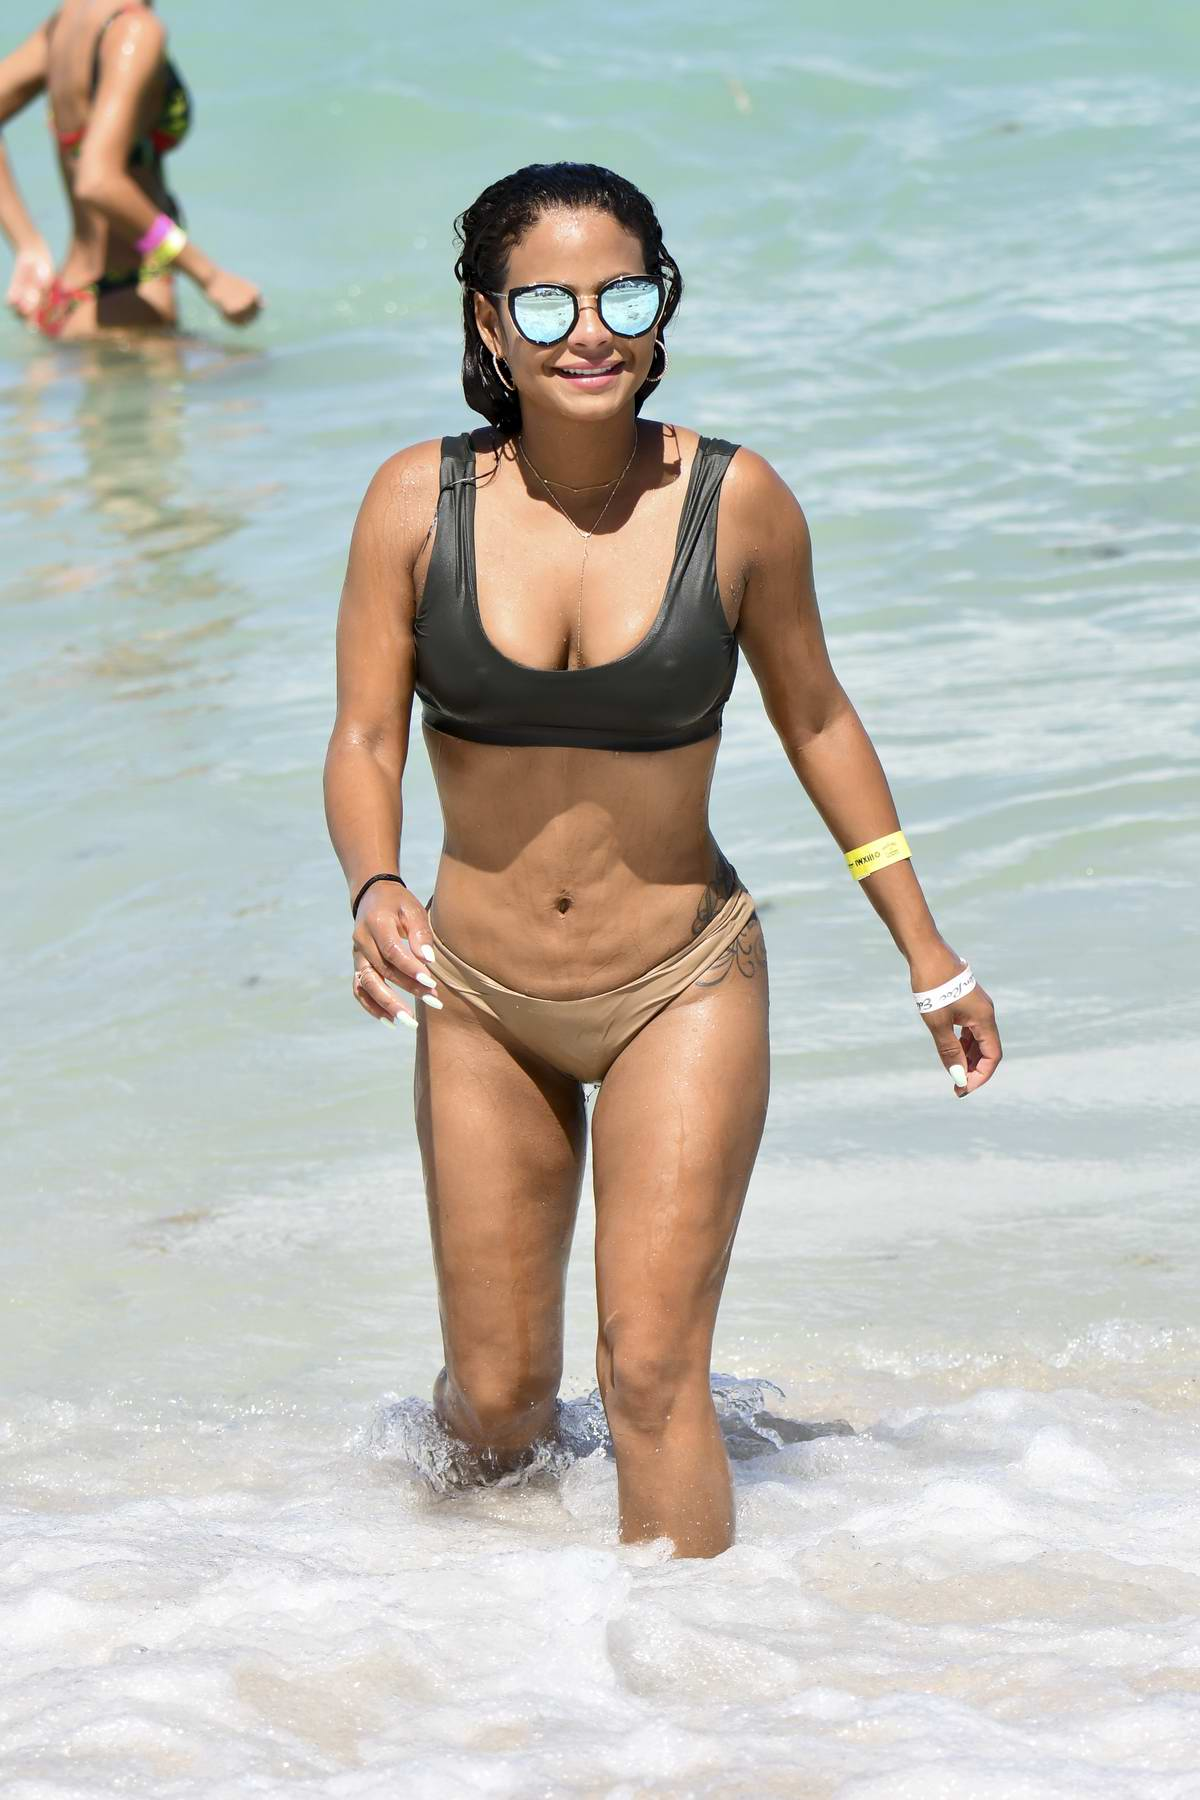 Christina Milian in Bikini enjoying the Beach in Miami